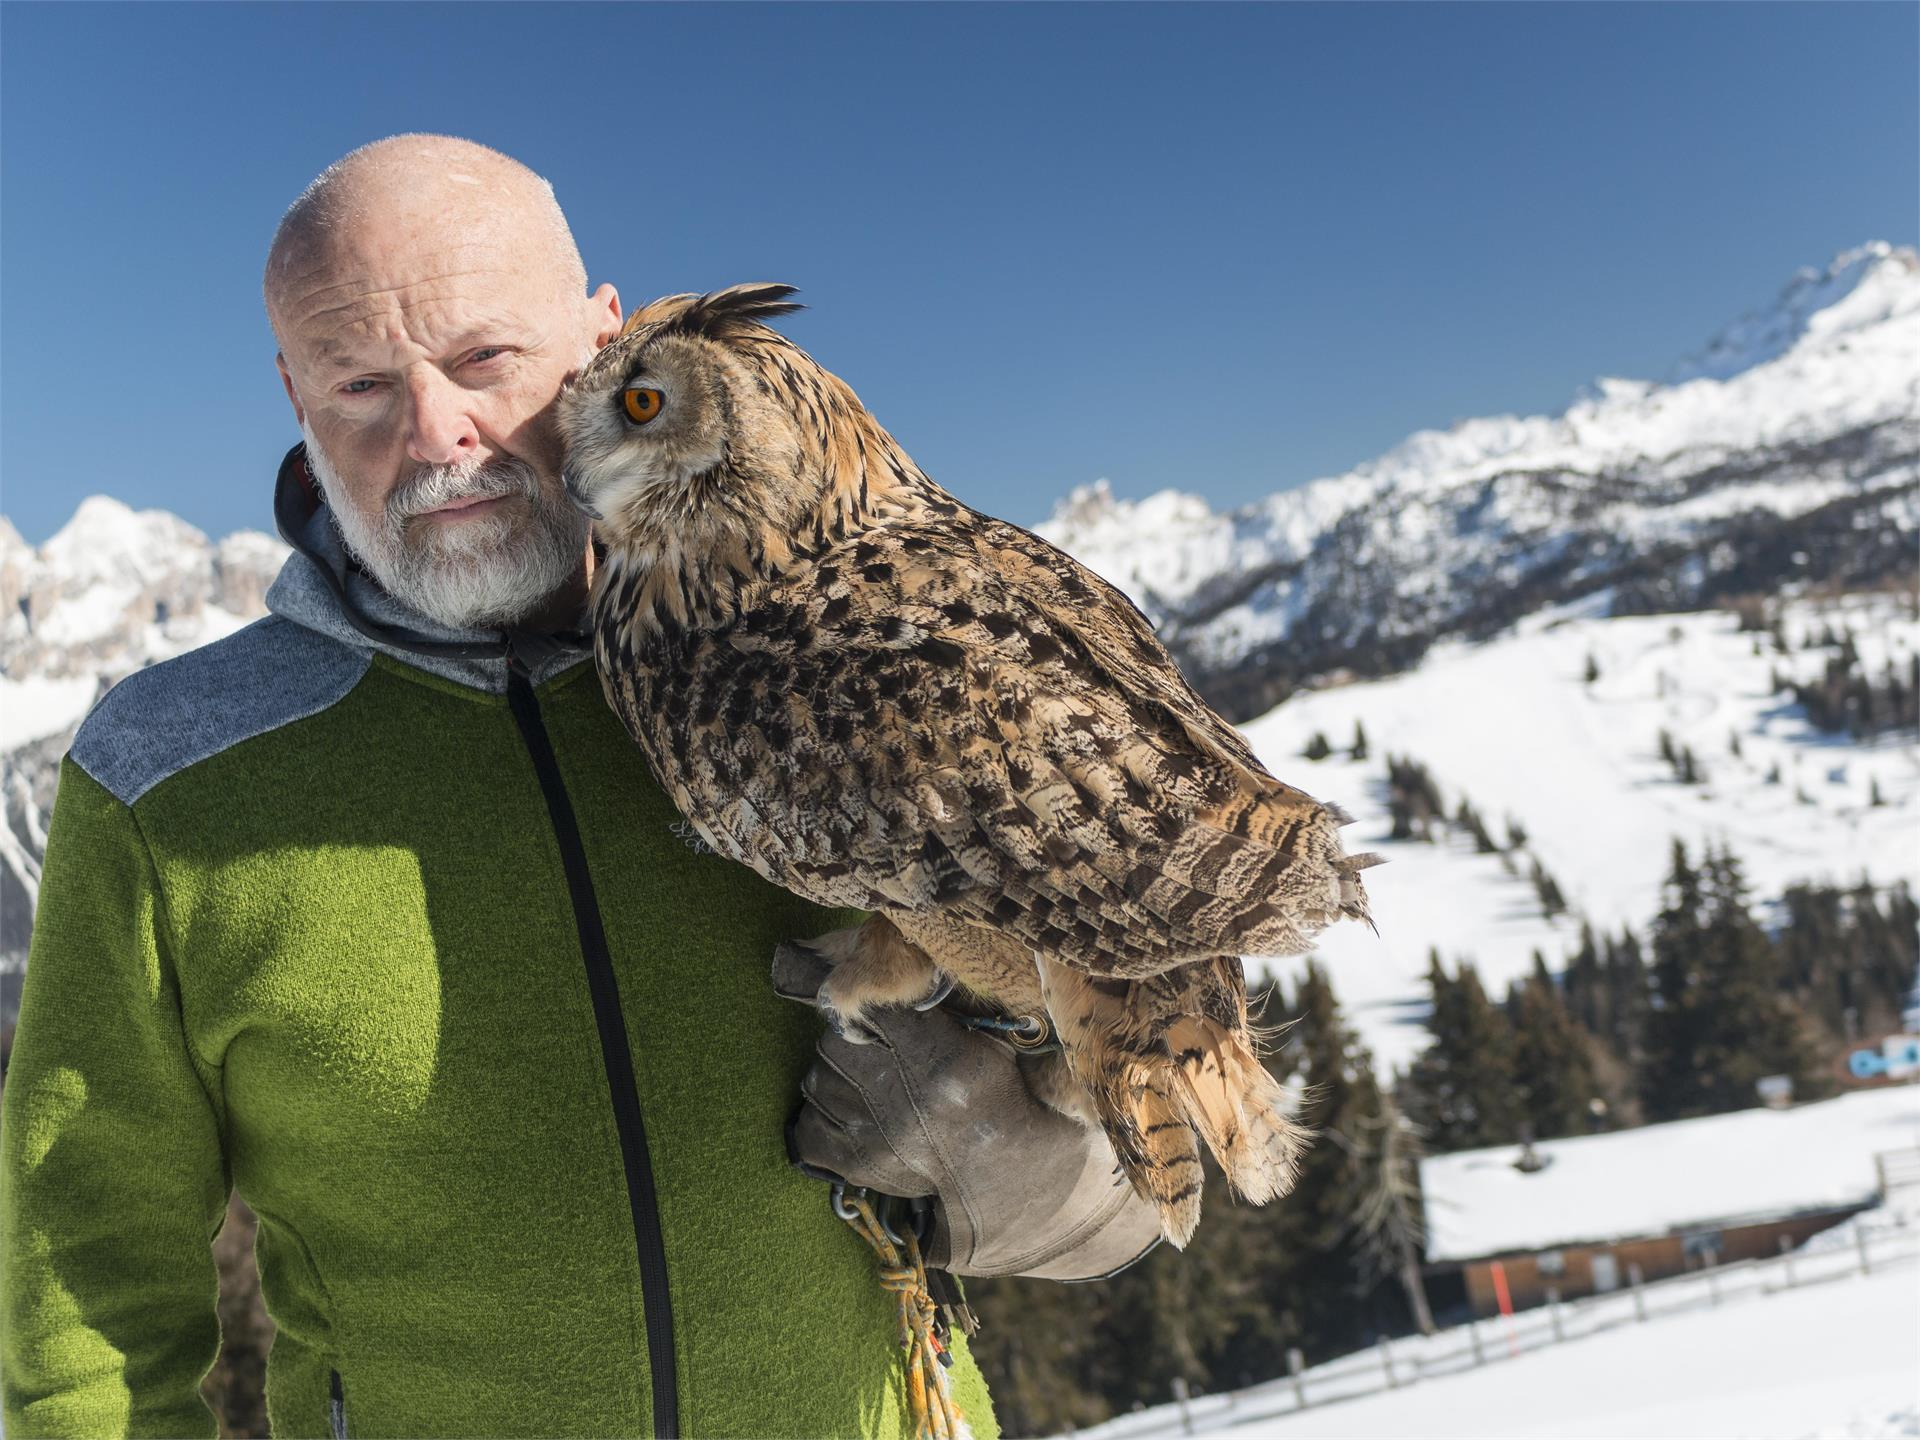 Birds of prey in the Dolomites